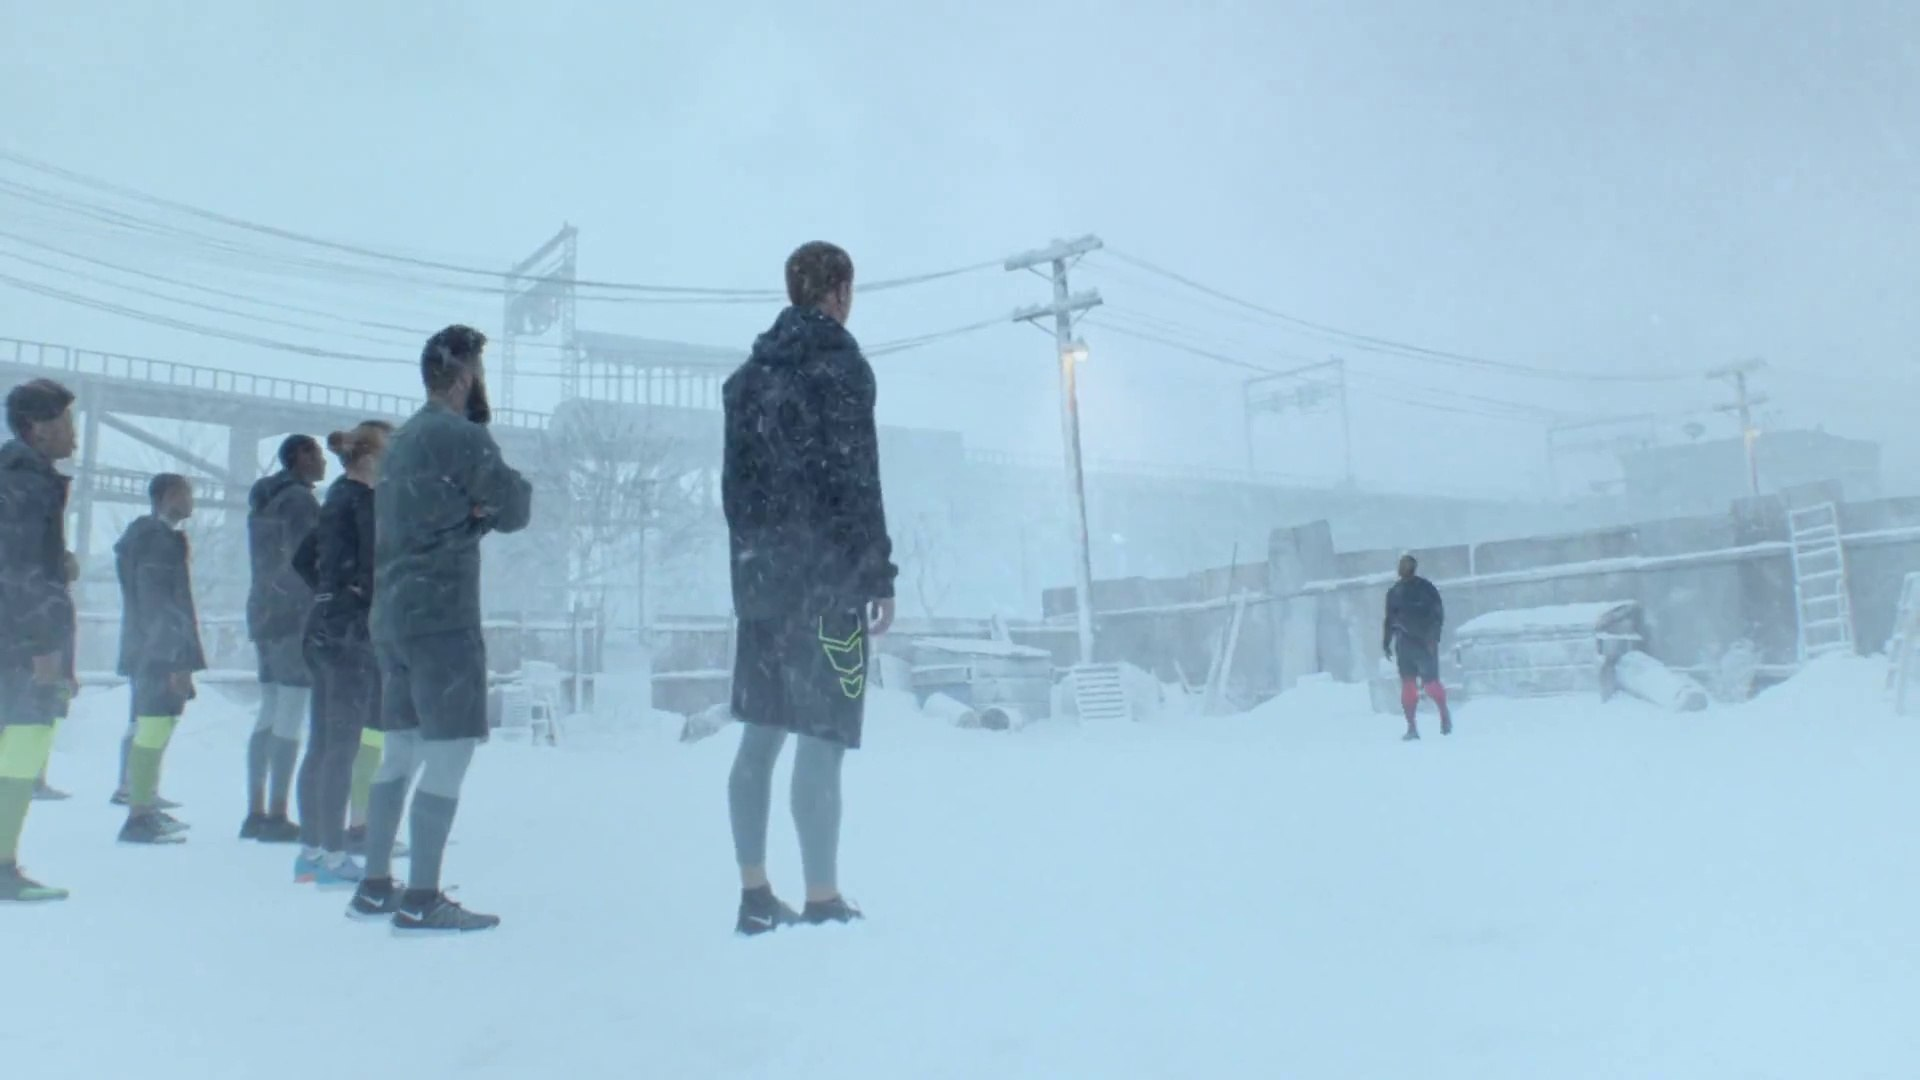 NFL Football Players break Glasses to play under Snow Fall in new Nike Commercial